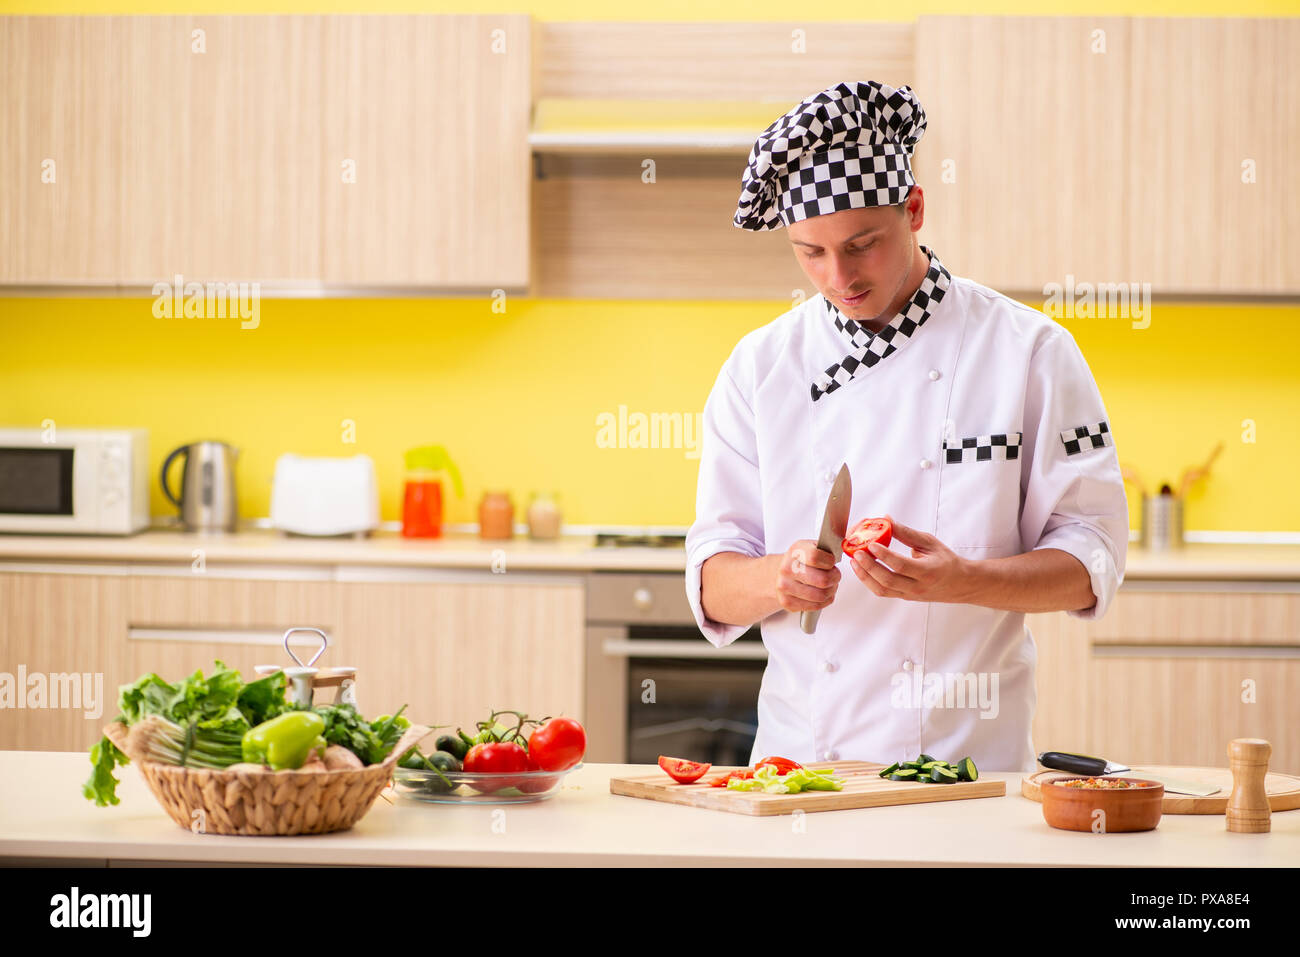 young professional cook preparing salad at kitchen stock photo